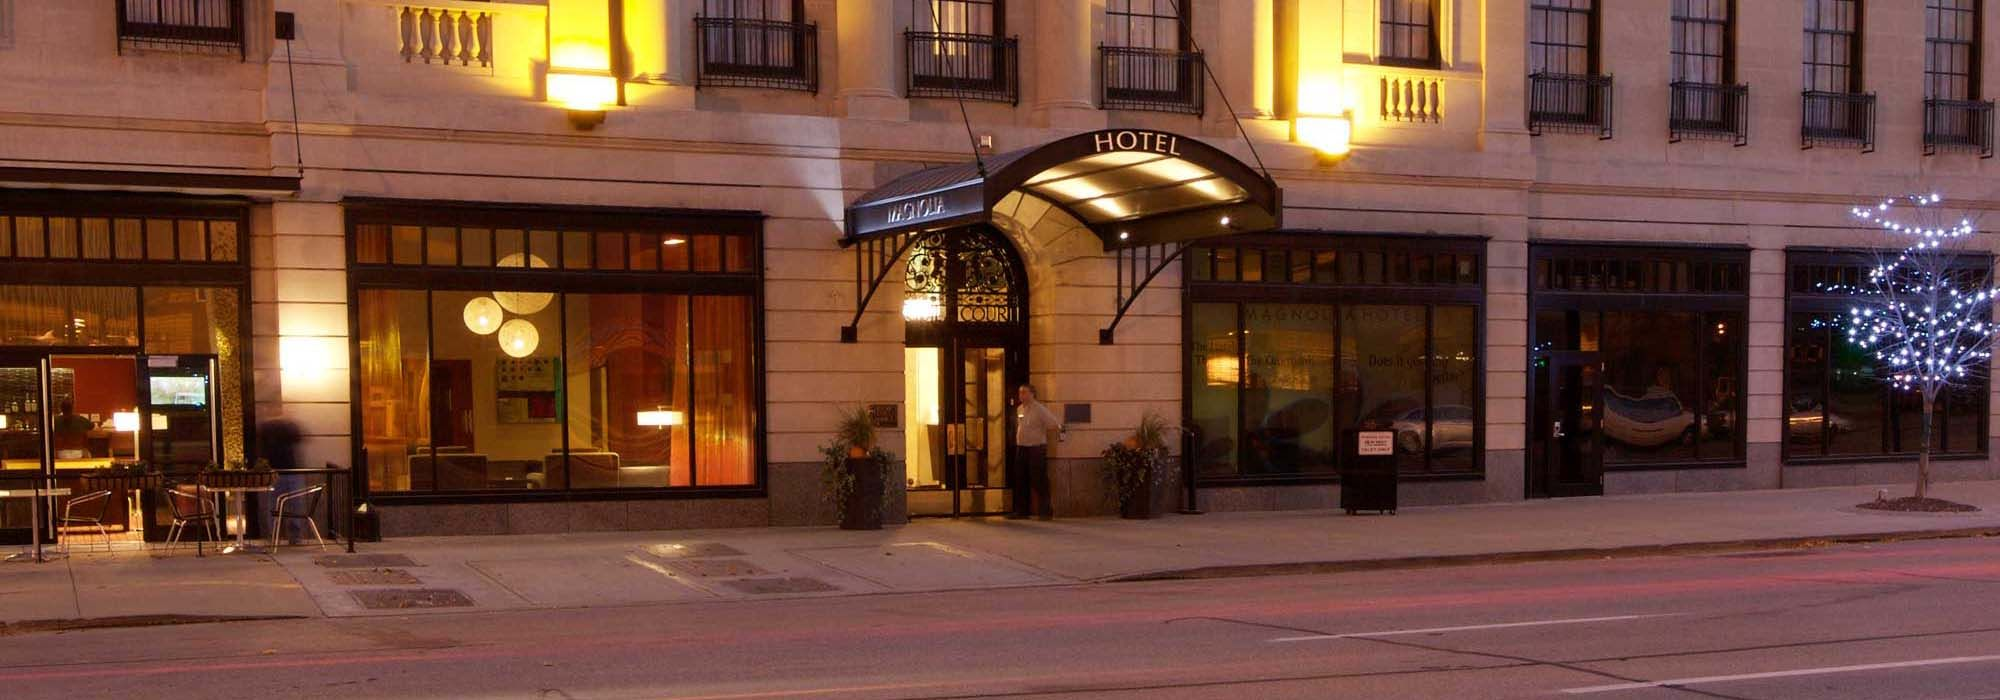 Hotels In Downtown Omaha Magnolia Hotel Photo Gallery Nebraska